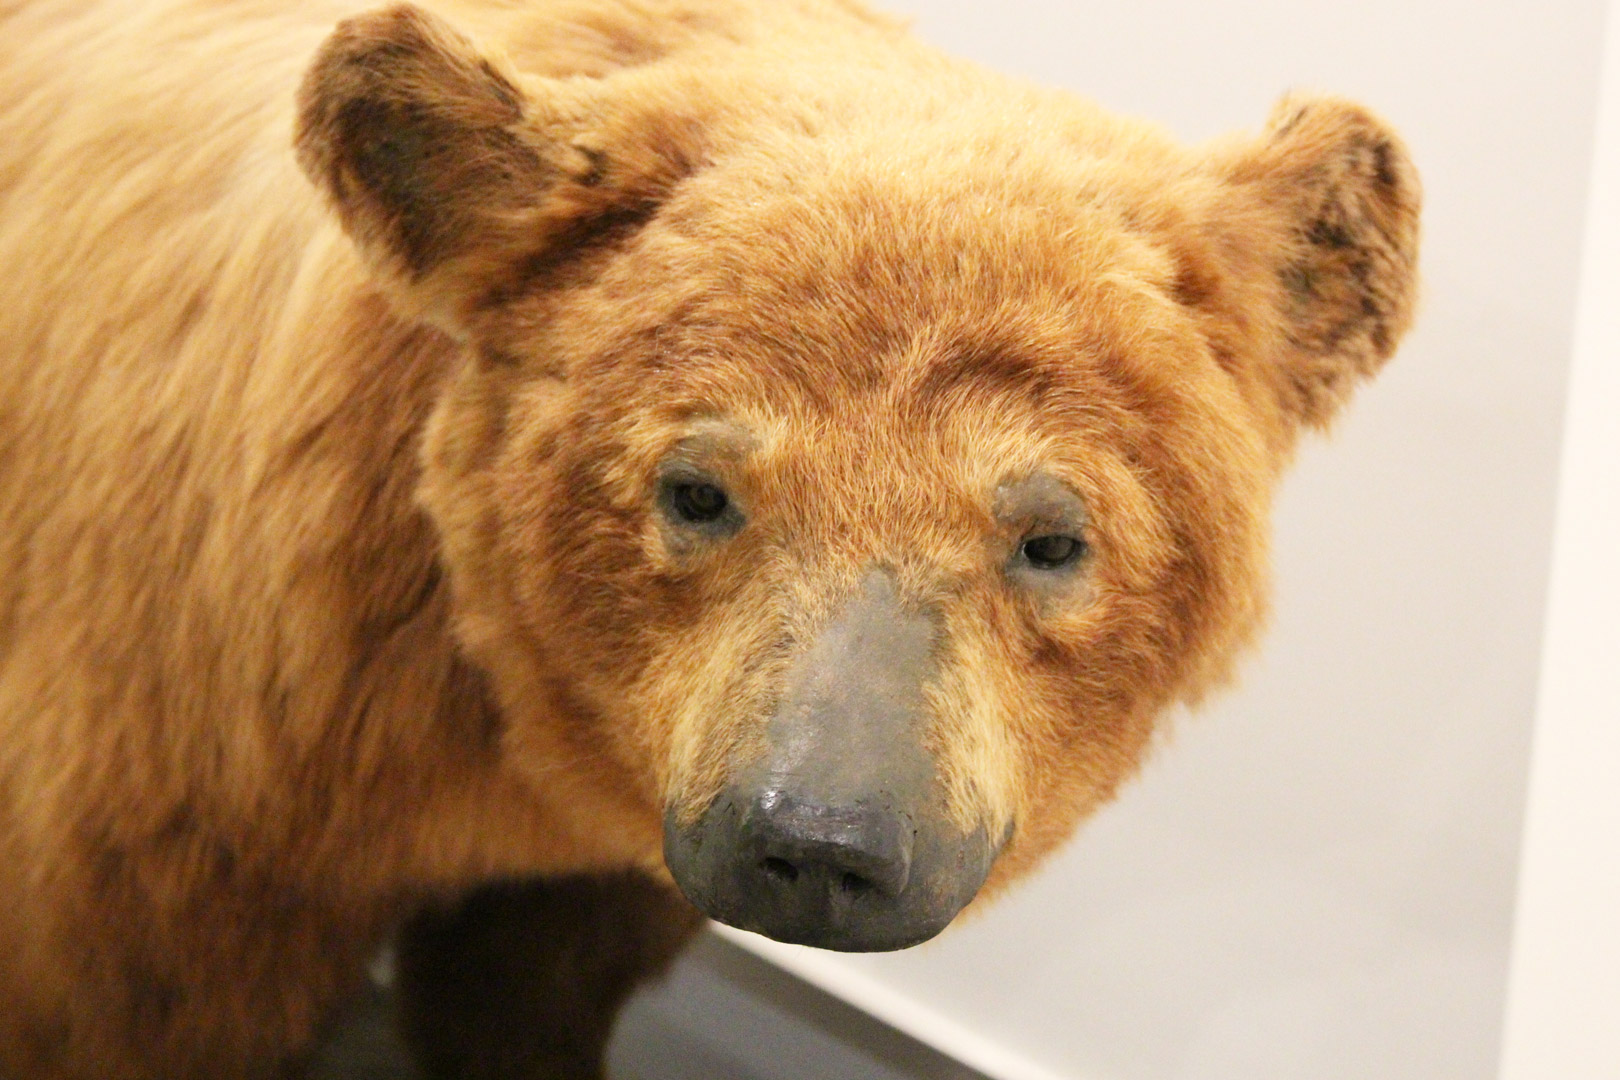 Ours provenant de l'importante collection de mammifères du Musée canadien de la nature, accompagne le roman « Bear » de Marian Engel.